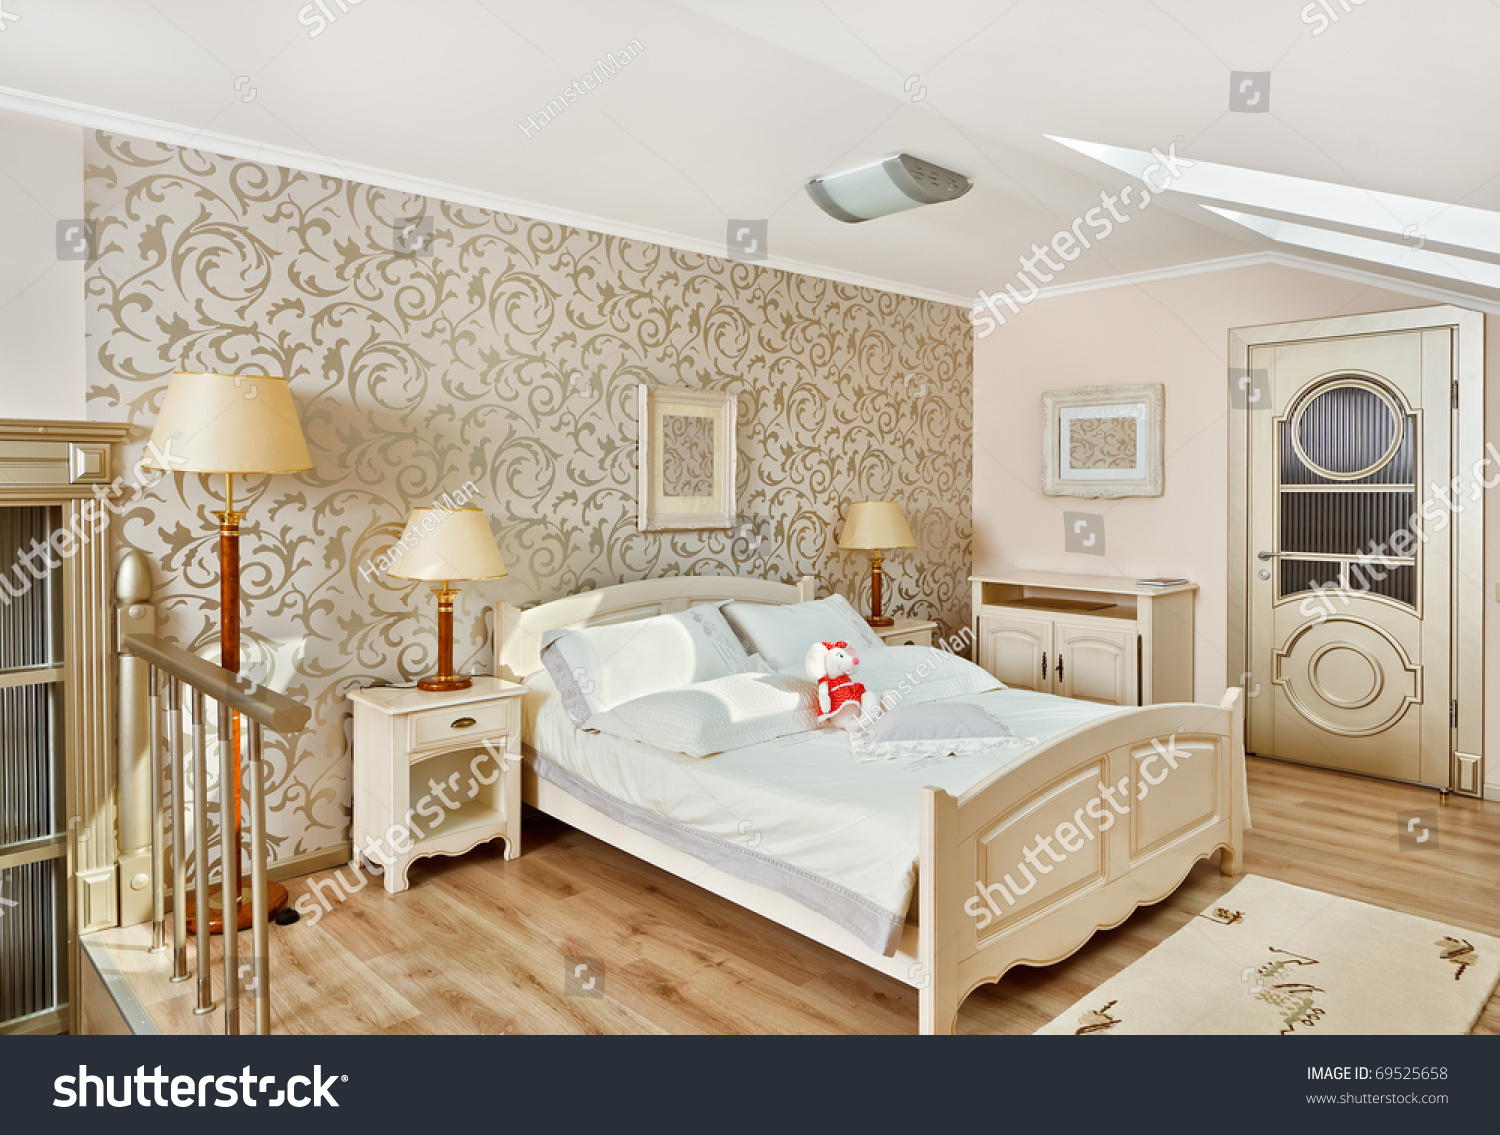 modern art deco style bedroom interior stock photo 69525658 shutterstock. Black Bedroom Furniture Sets. Home Design Ideas